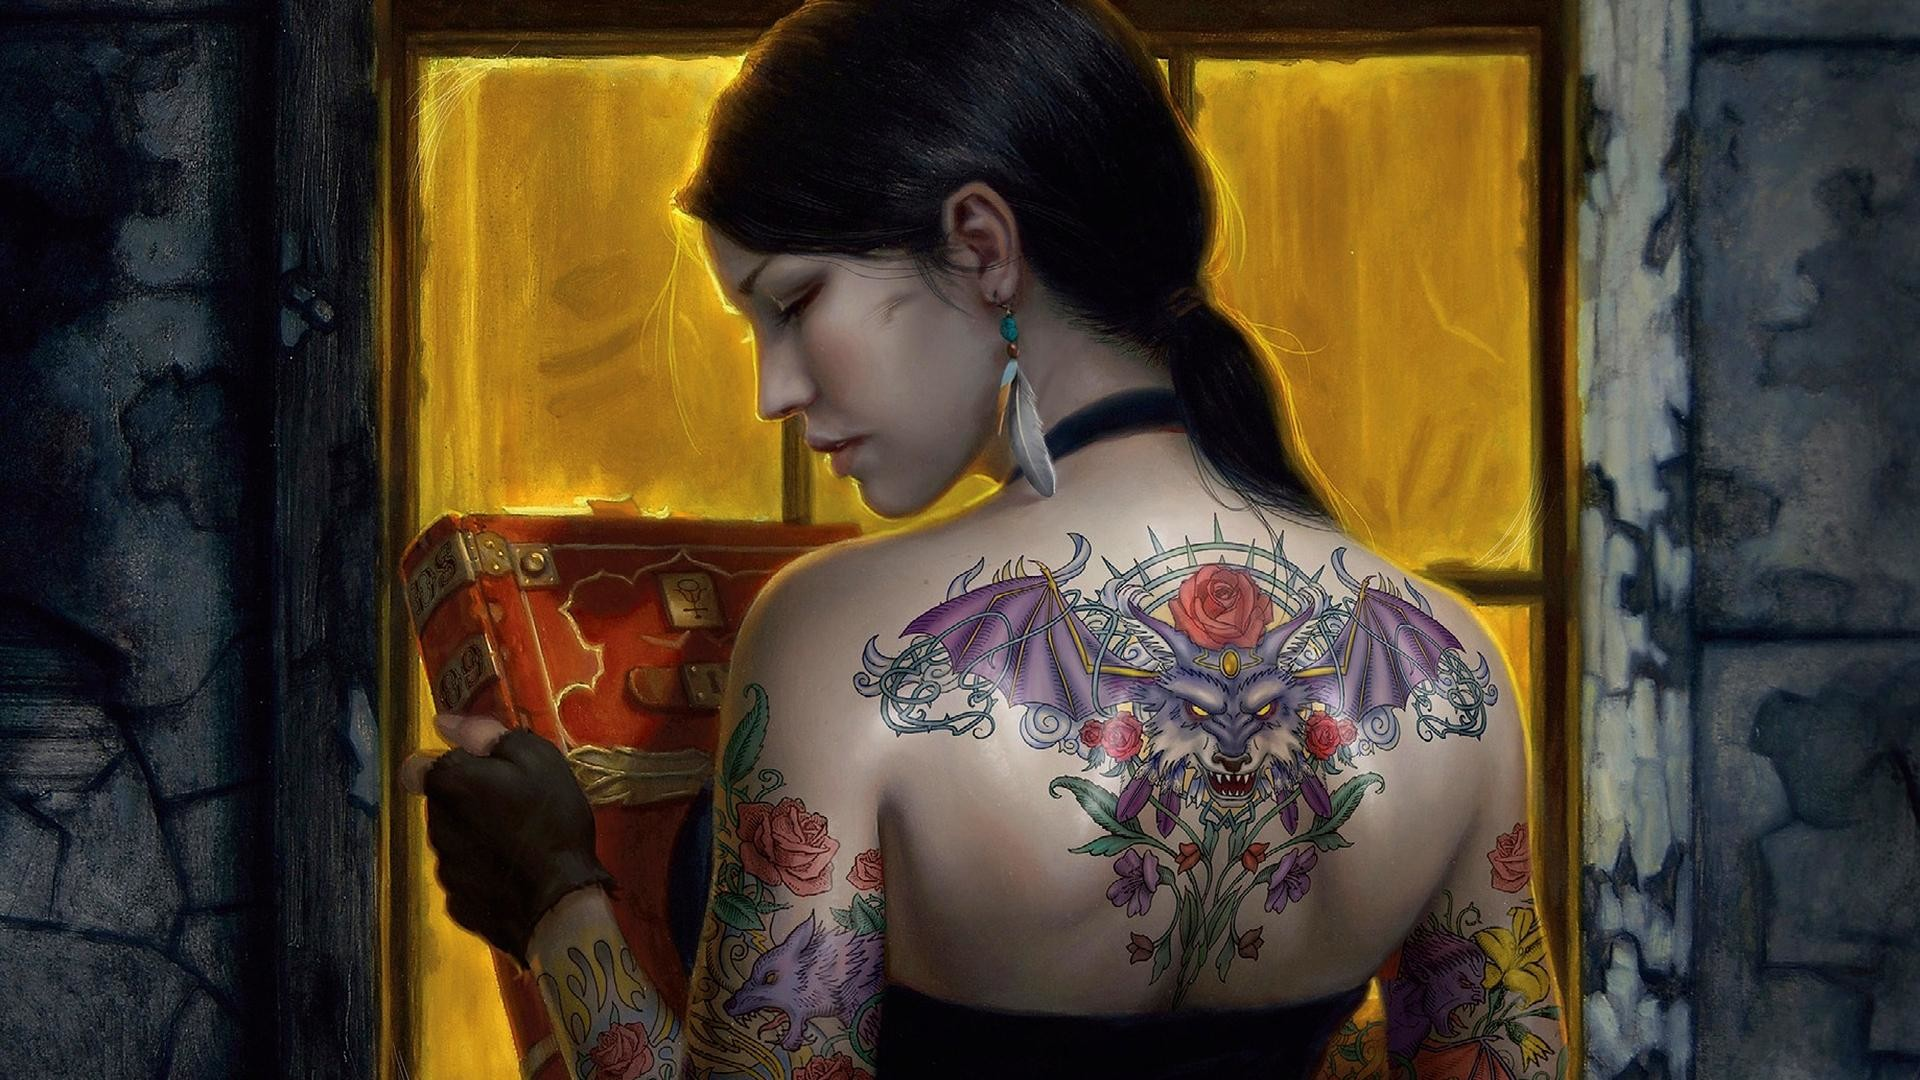 1920x1080 Tattoo Girls Designs HD Wallpaper of Tattoos